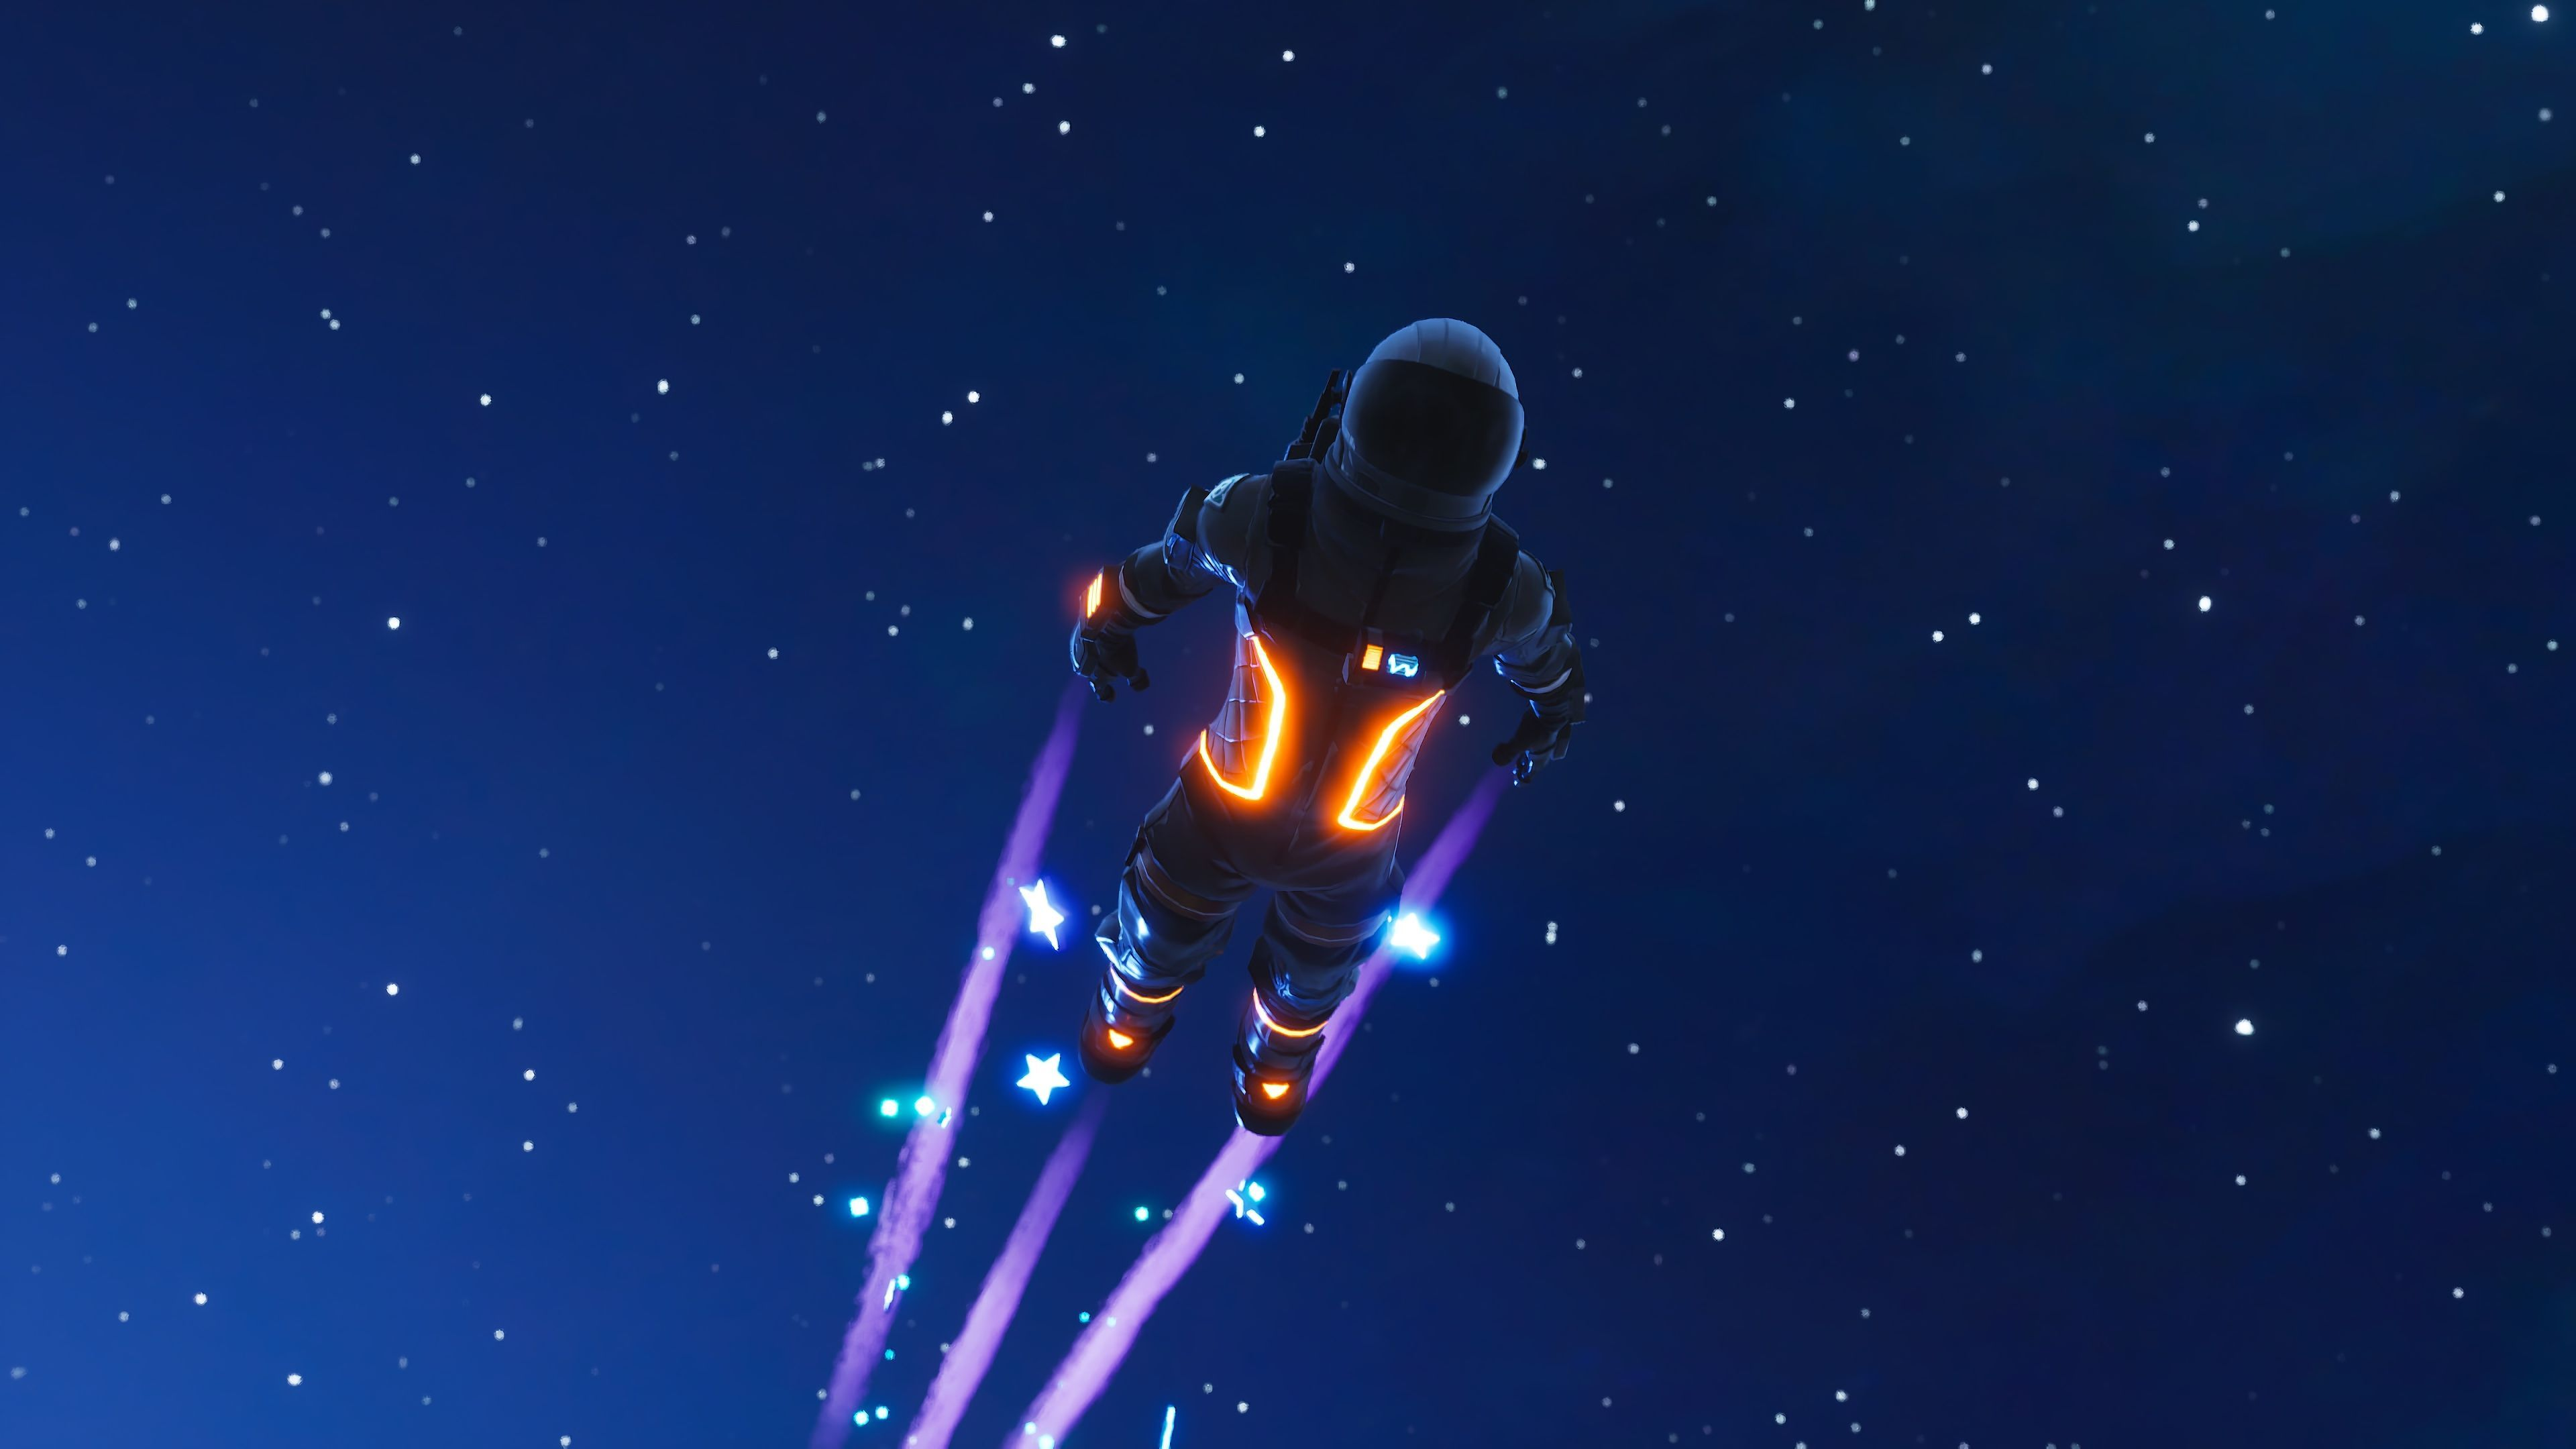 Dark Voyager Skydive Fortnite Battle Royale 4k Ps Games Wallpapers Hd Wallpapers Games Wallp Anime Wallpaper Anime Backgrounds Wallpapers 3840x2160 Wallpaper